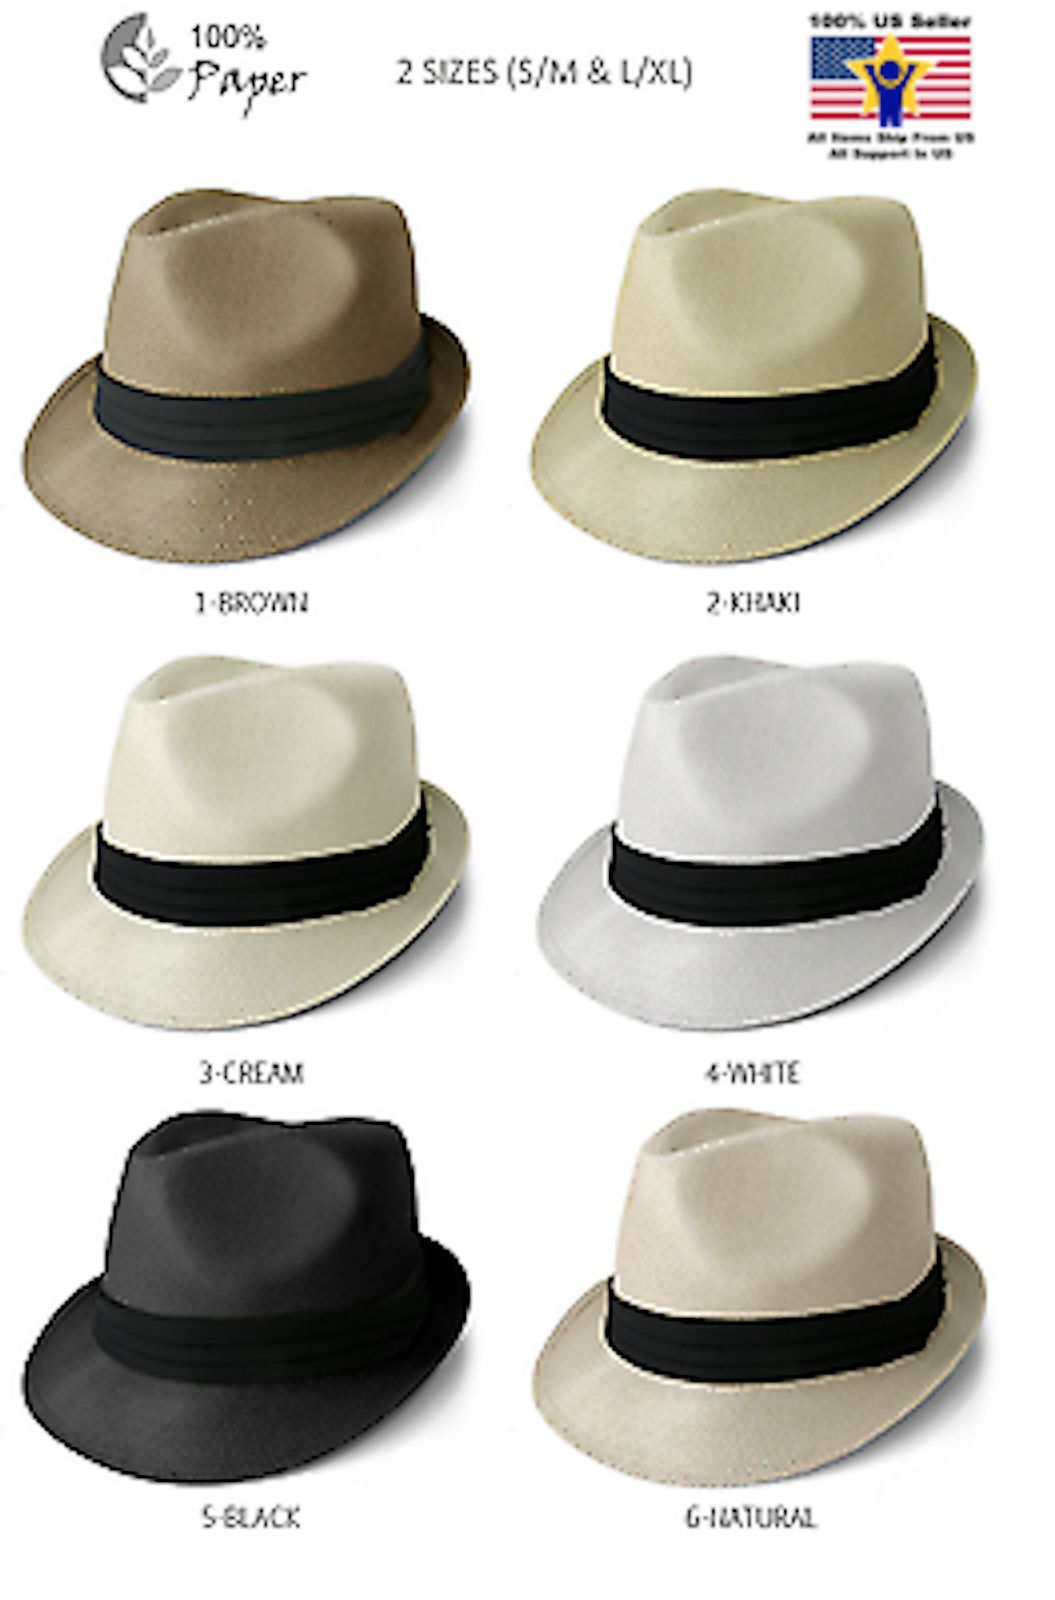 1948808f67a Straw Fedora Hat Trilby Cuban Cap Summer Beach Sun Panama Short Brim Men  Women